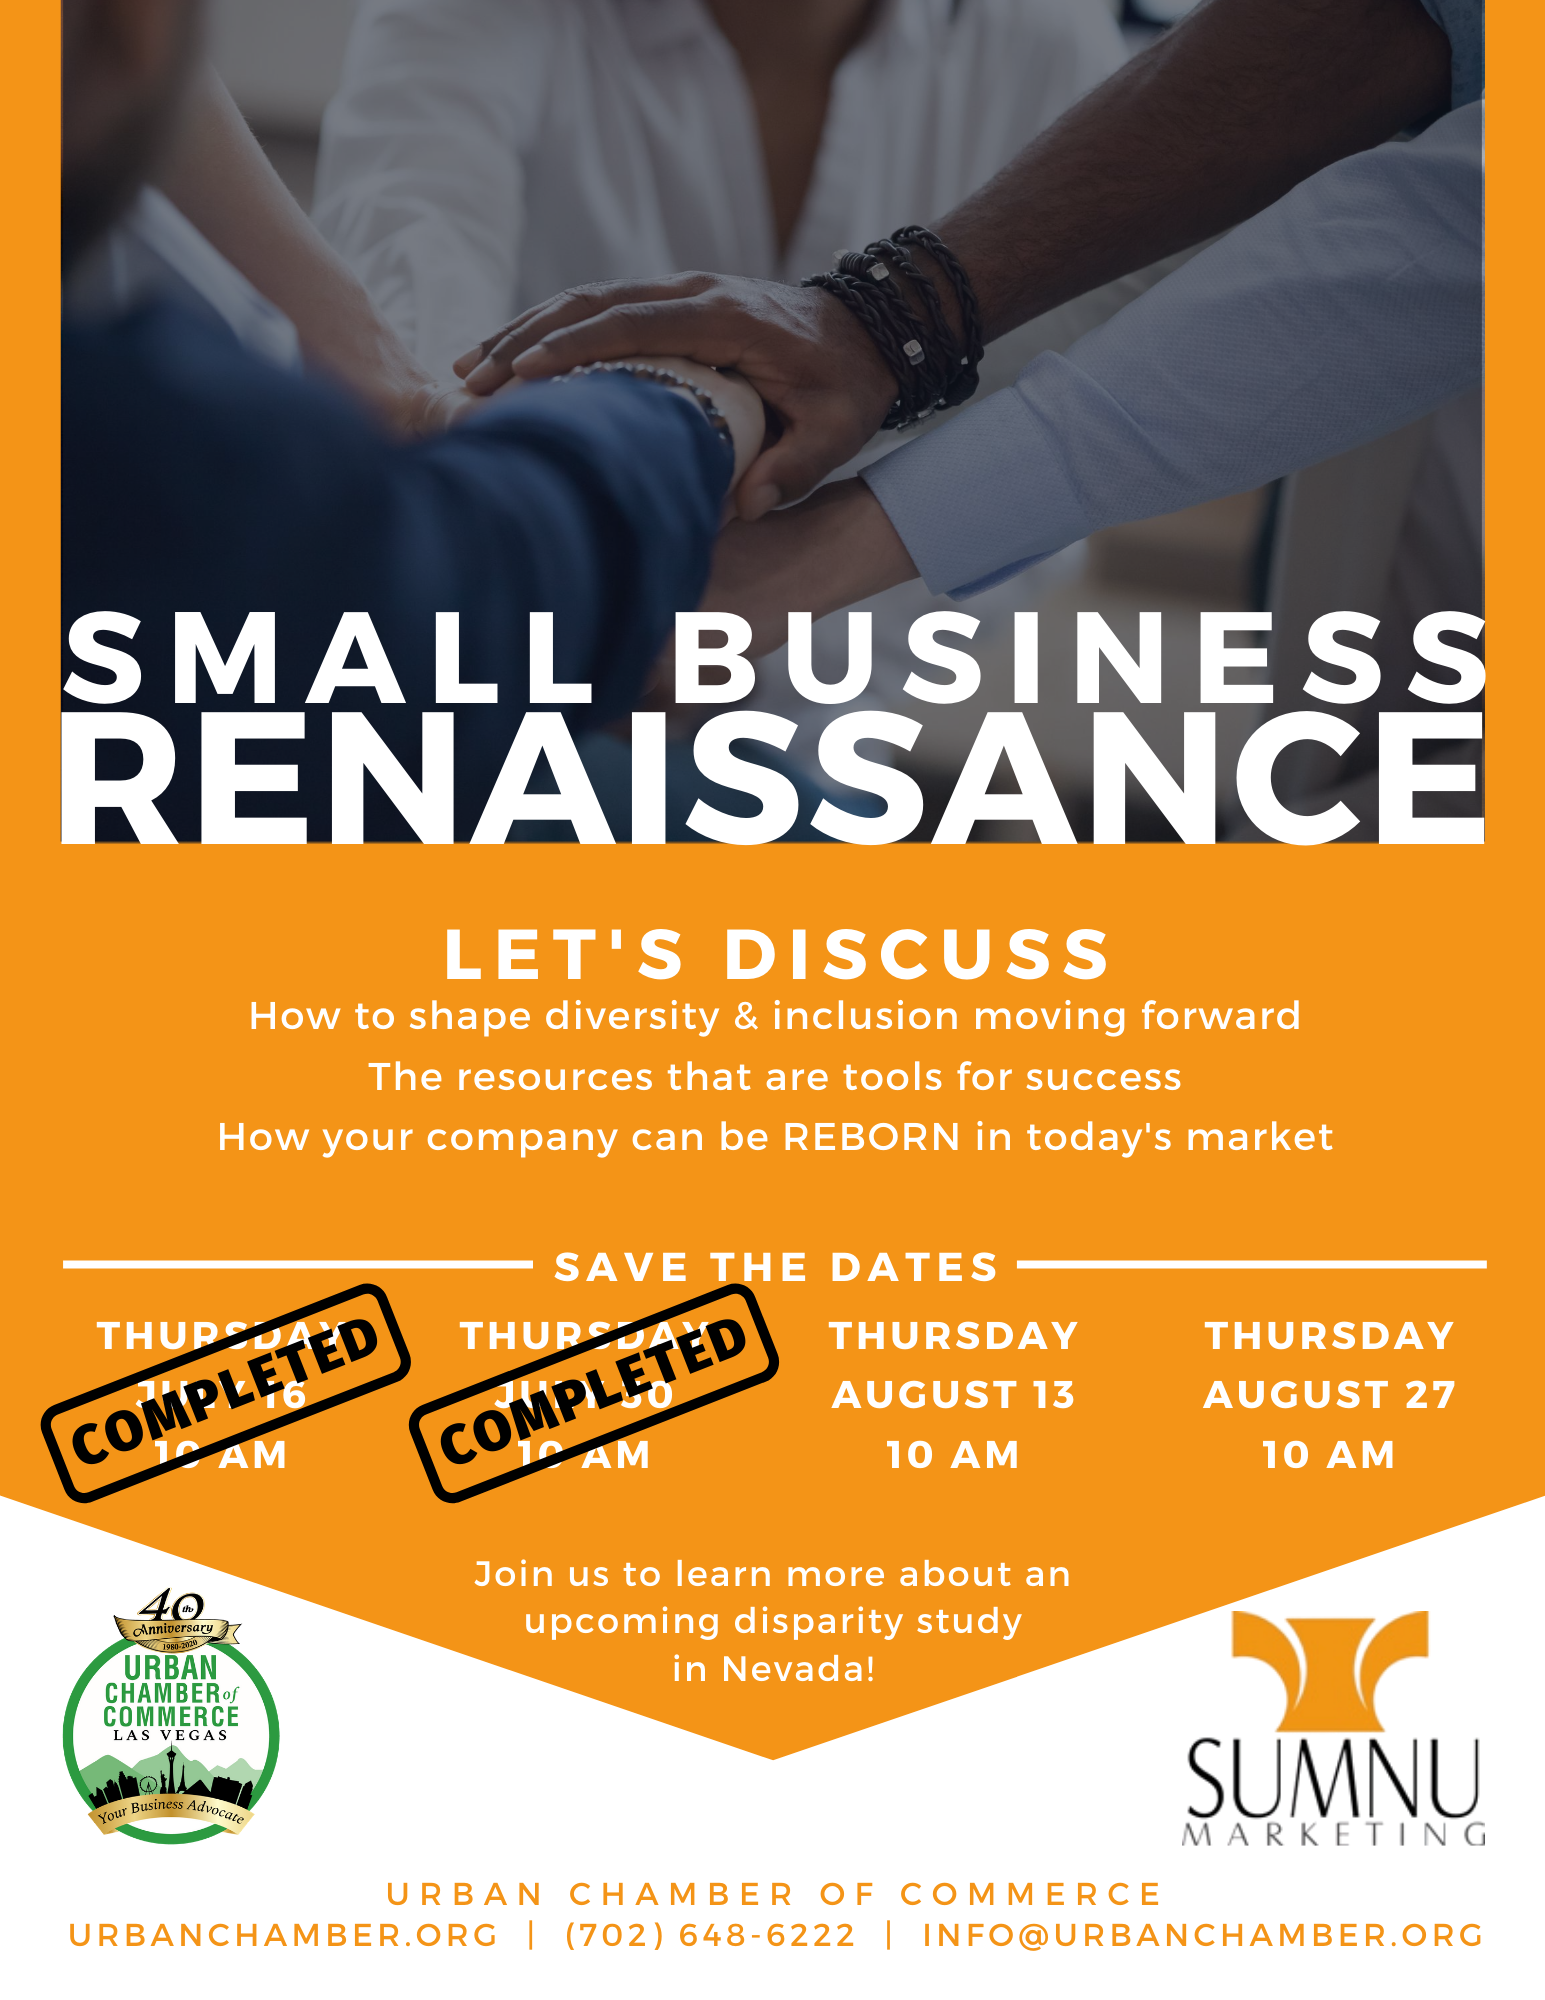 Small Business Renaissance Save The Date 3